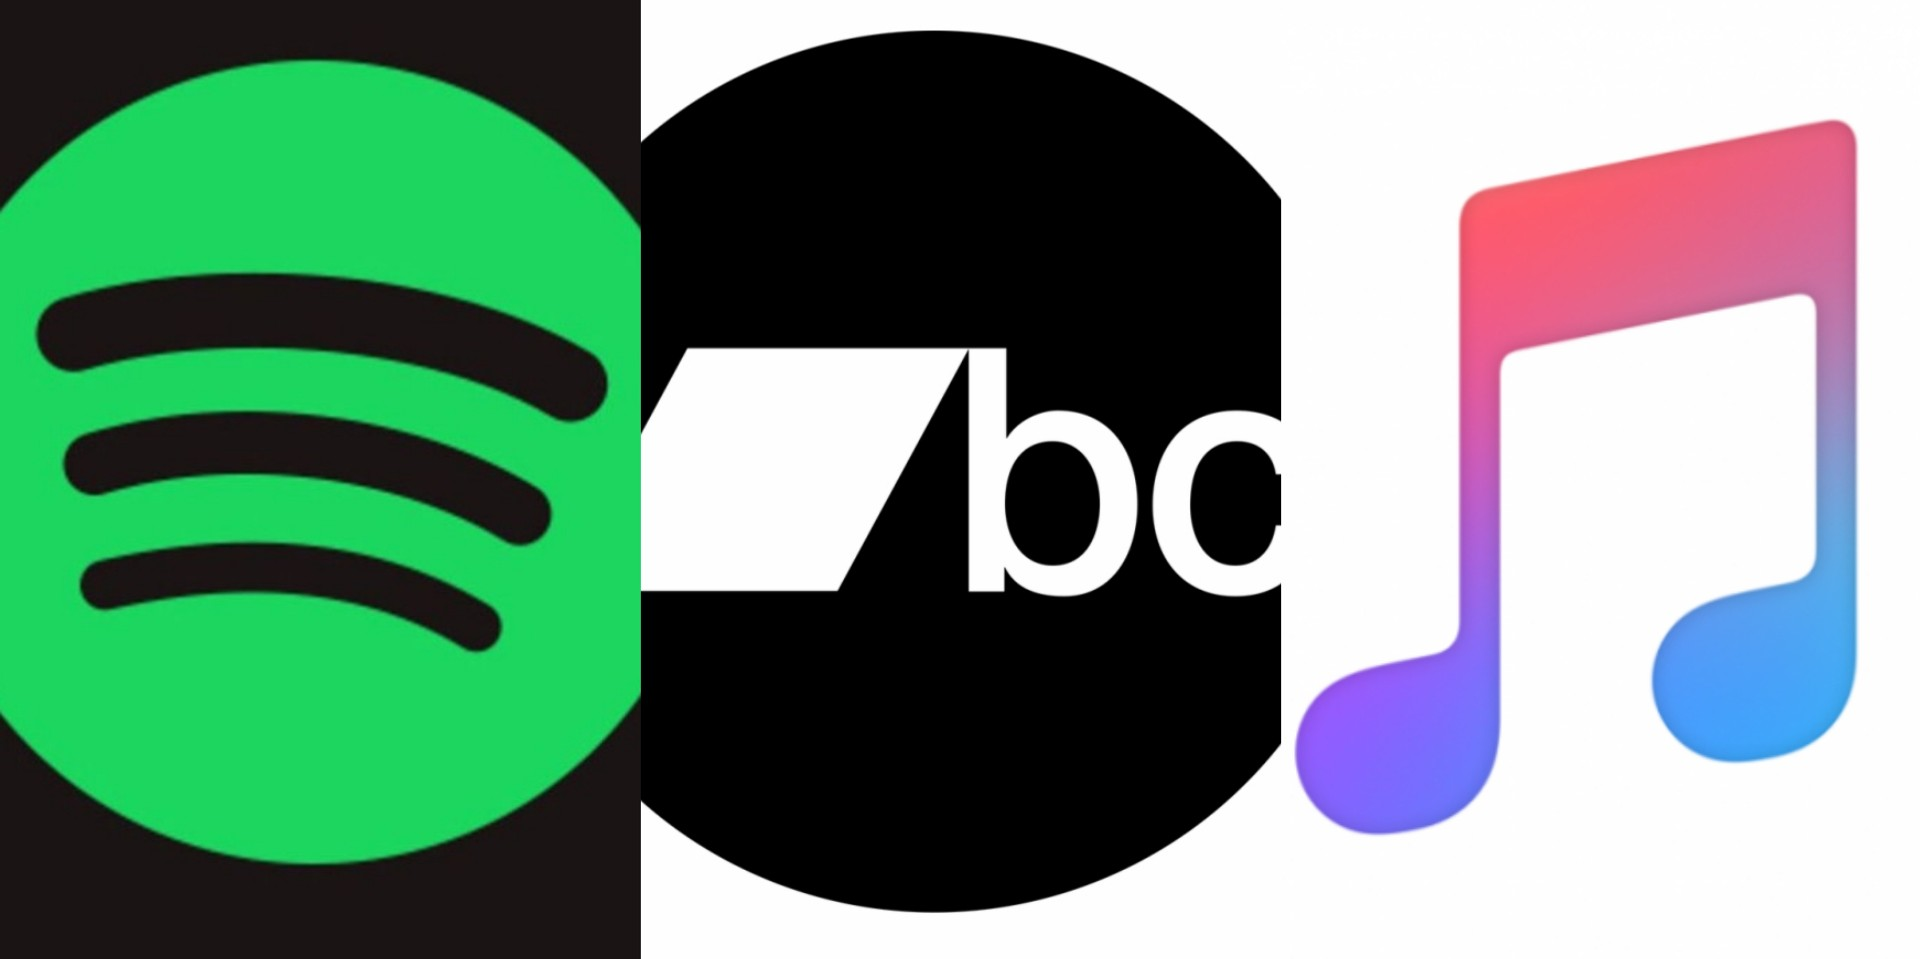 Music streaming now accounts for more than 80% of US consumption